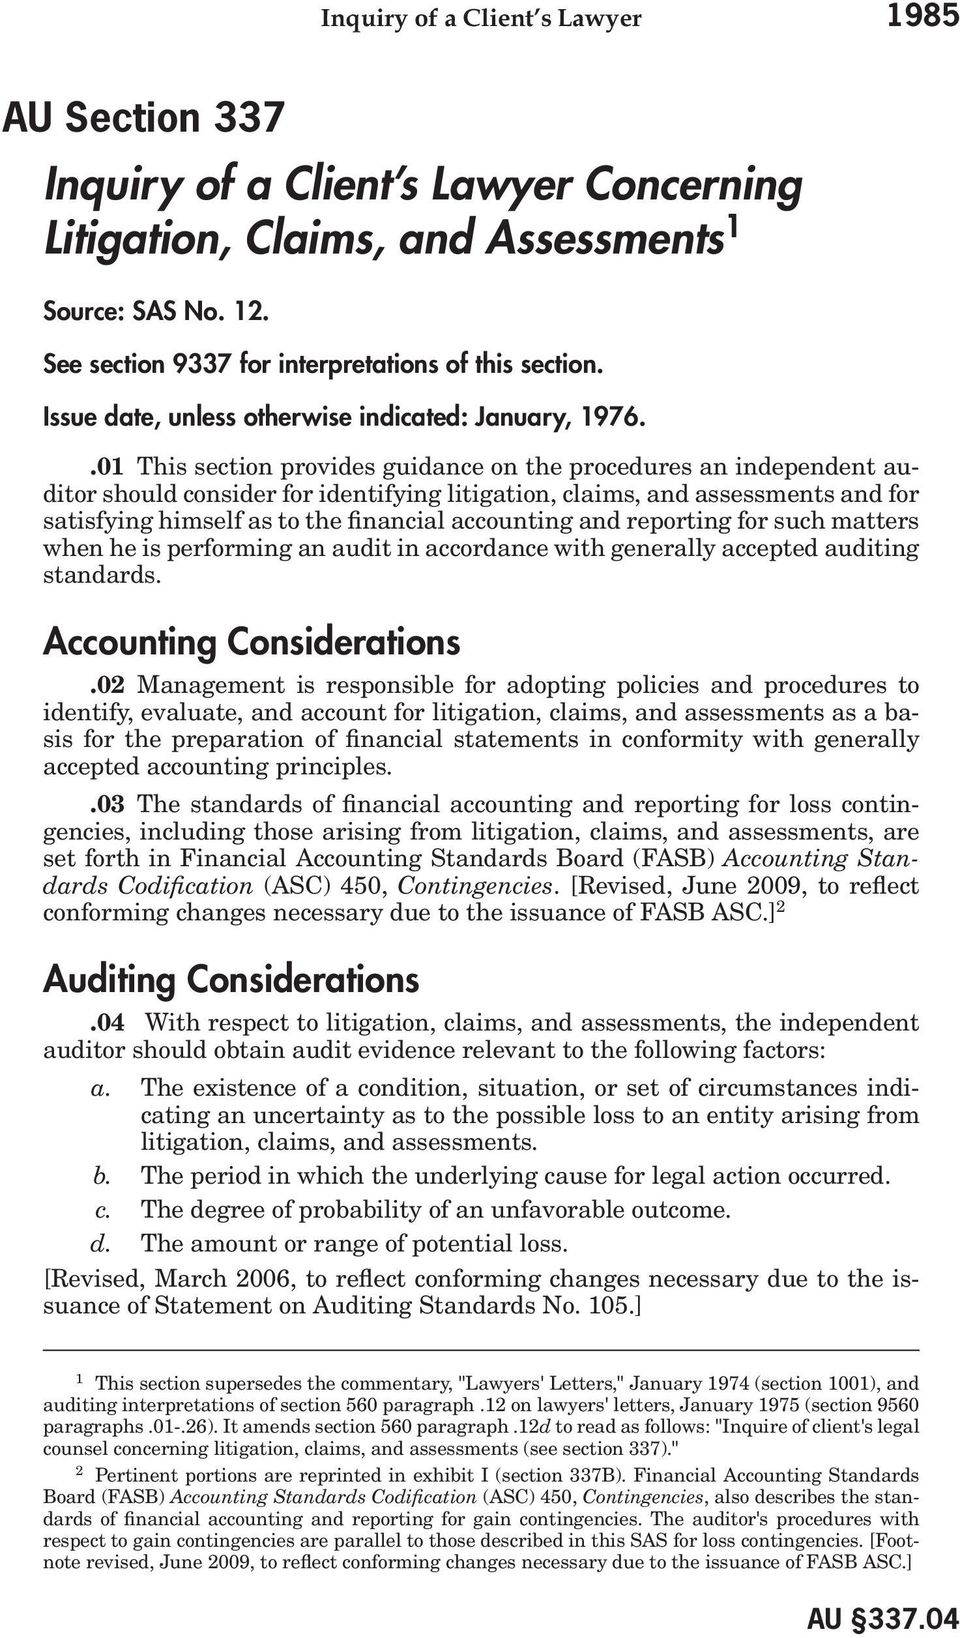 .01 This section provides guidance on the procedures an independent auditor should consider for identifying litigation, claims, and assessments and for satisfying himself as to the financial